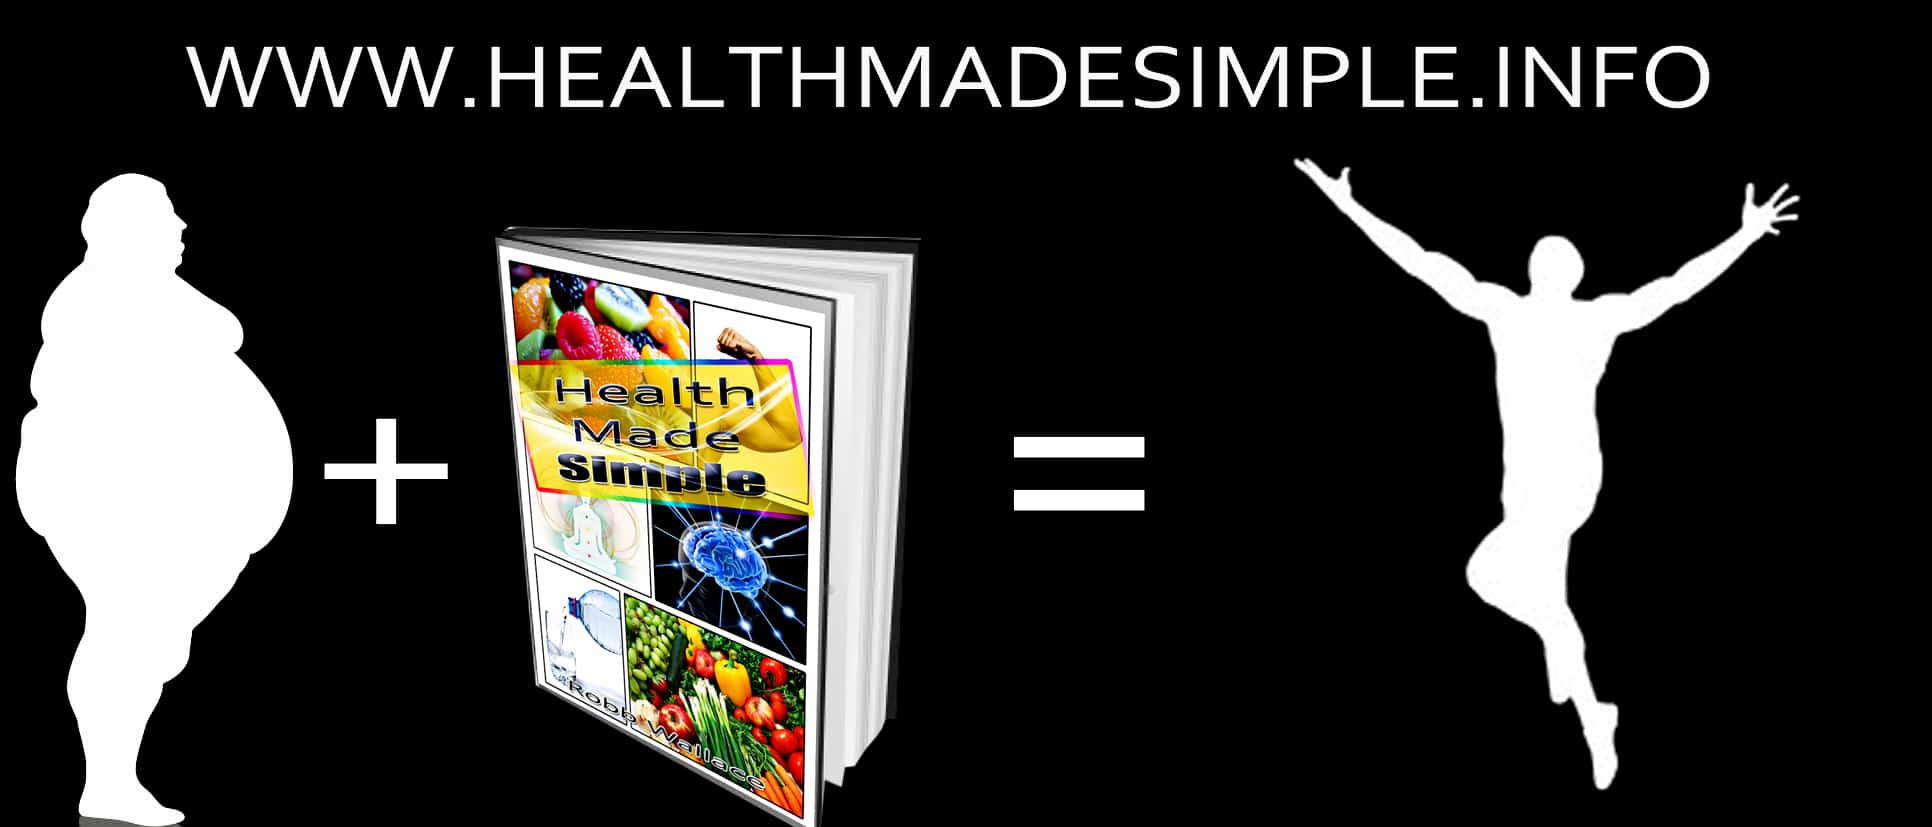 Health Made Simple Adverts by Robb Wallace Media